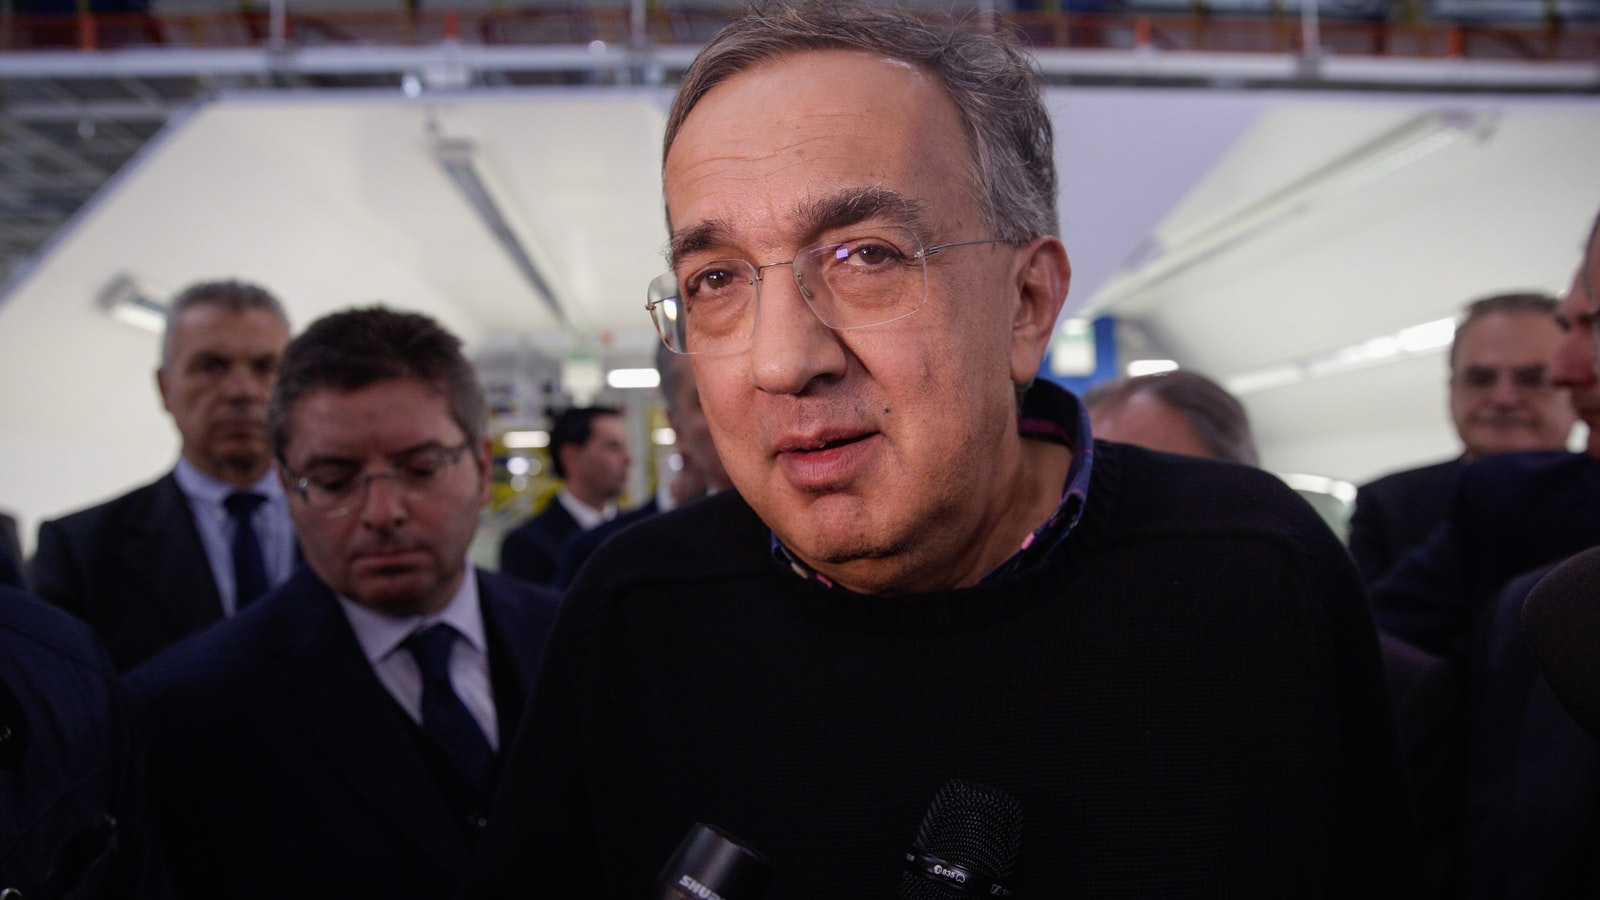 Fiat Chrysler CEO Sergio Marchionne. Photo by Bloomberg.